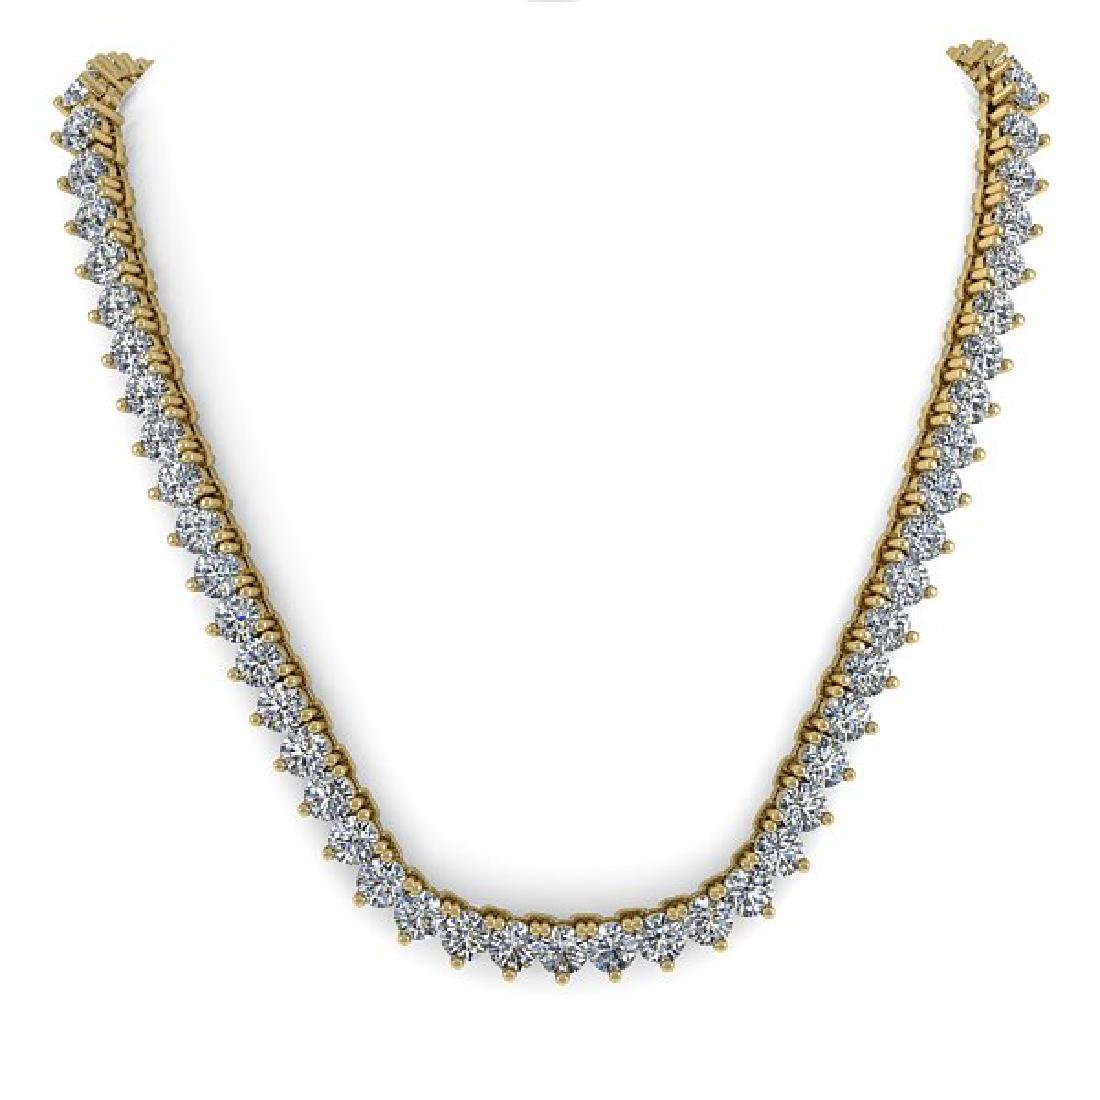 20 CTW Solitaire VS/SI Diamond Necklace 18K Yellow Gold - 3